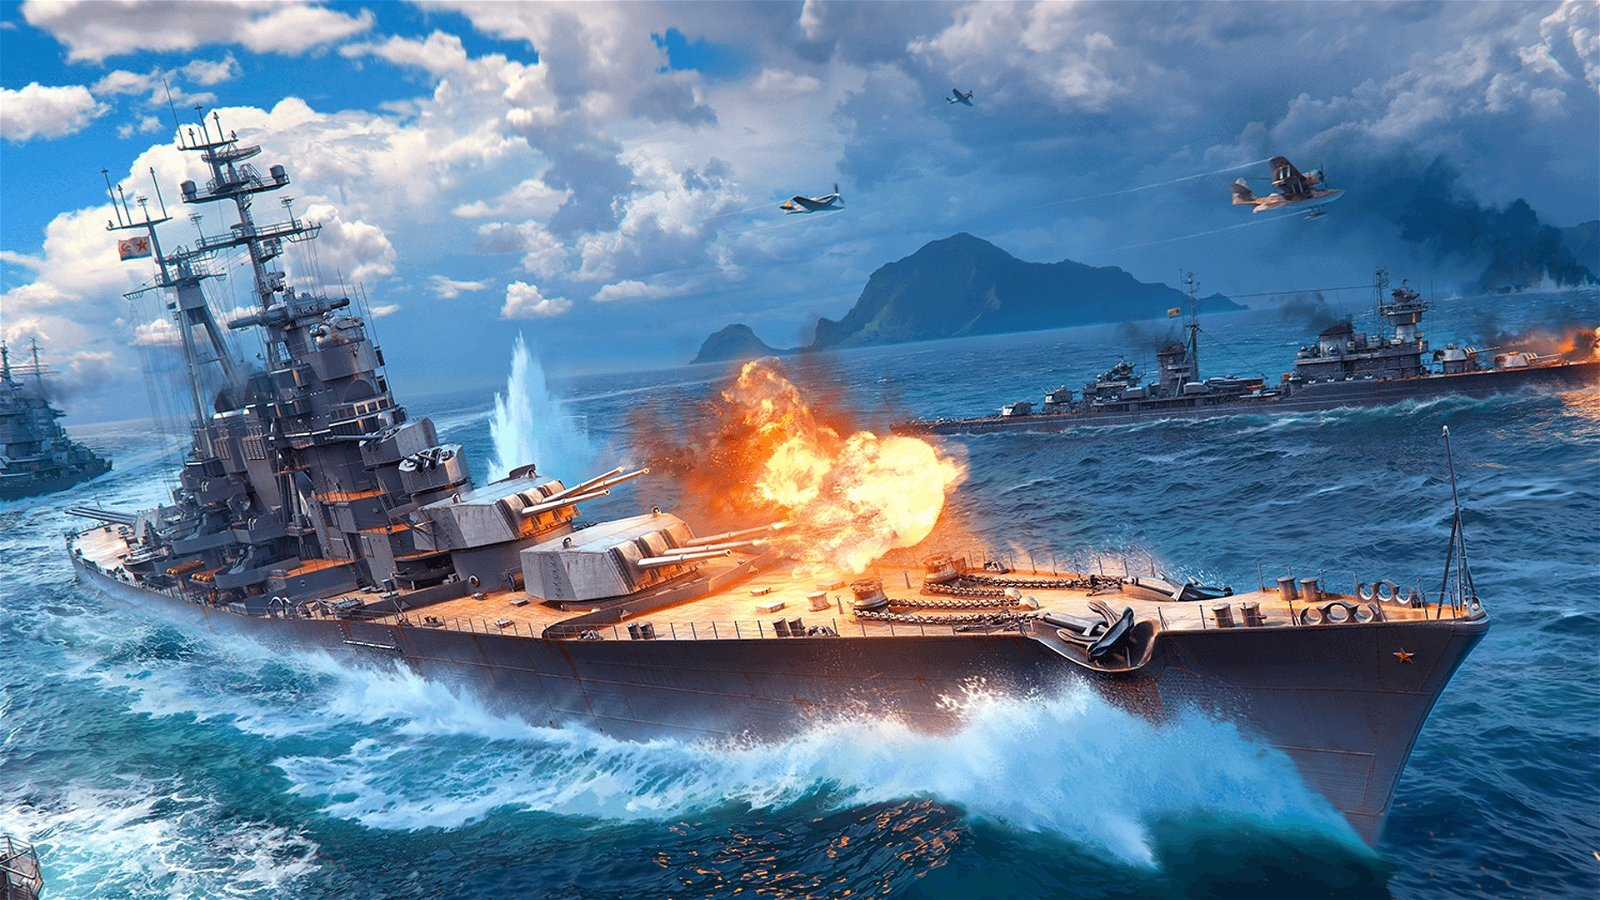 World of Warships: Blitz Review - The Grind is Worth it